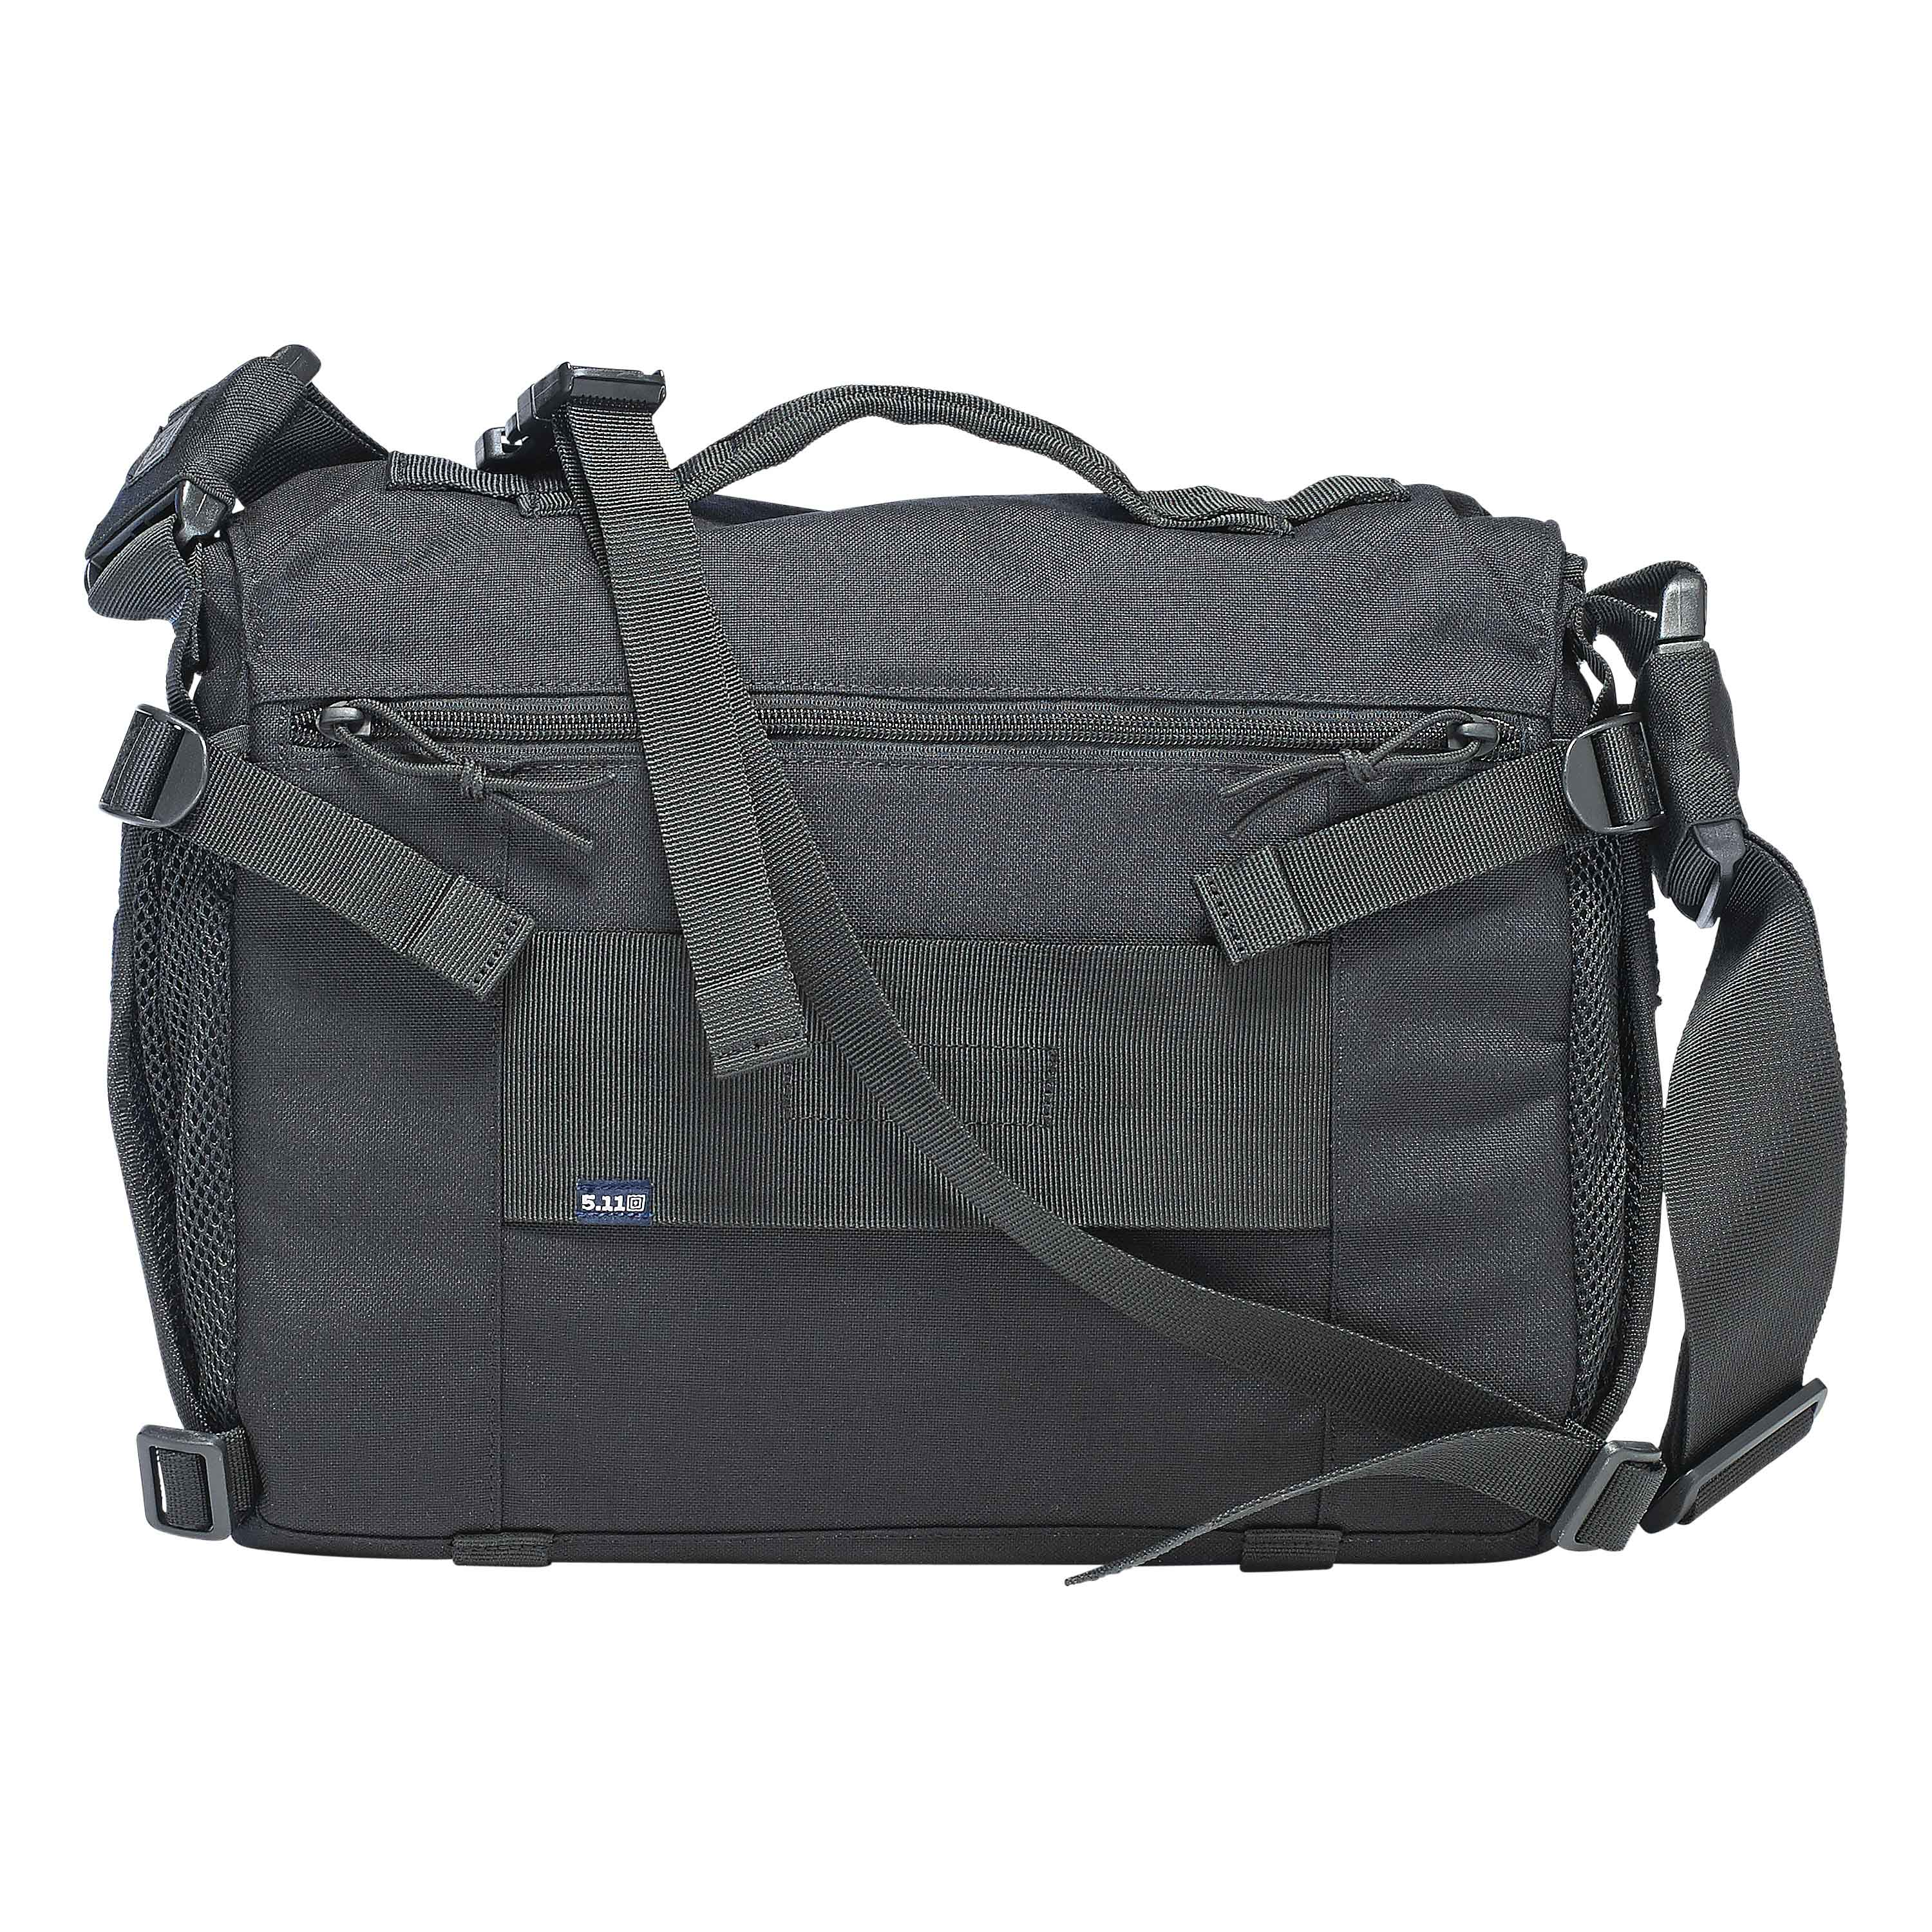 5.11 Tasche RUSH Delivery Mike schwarz